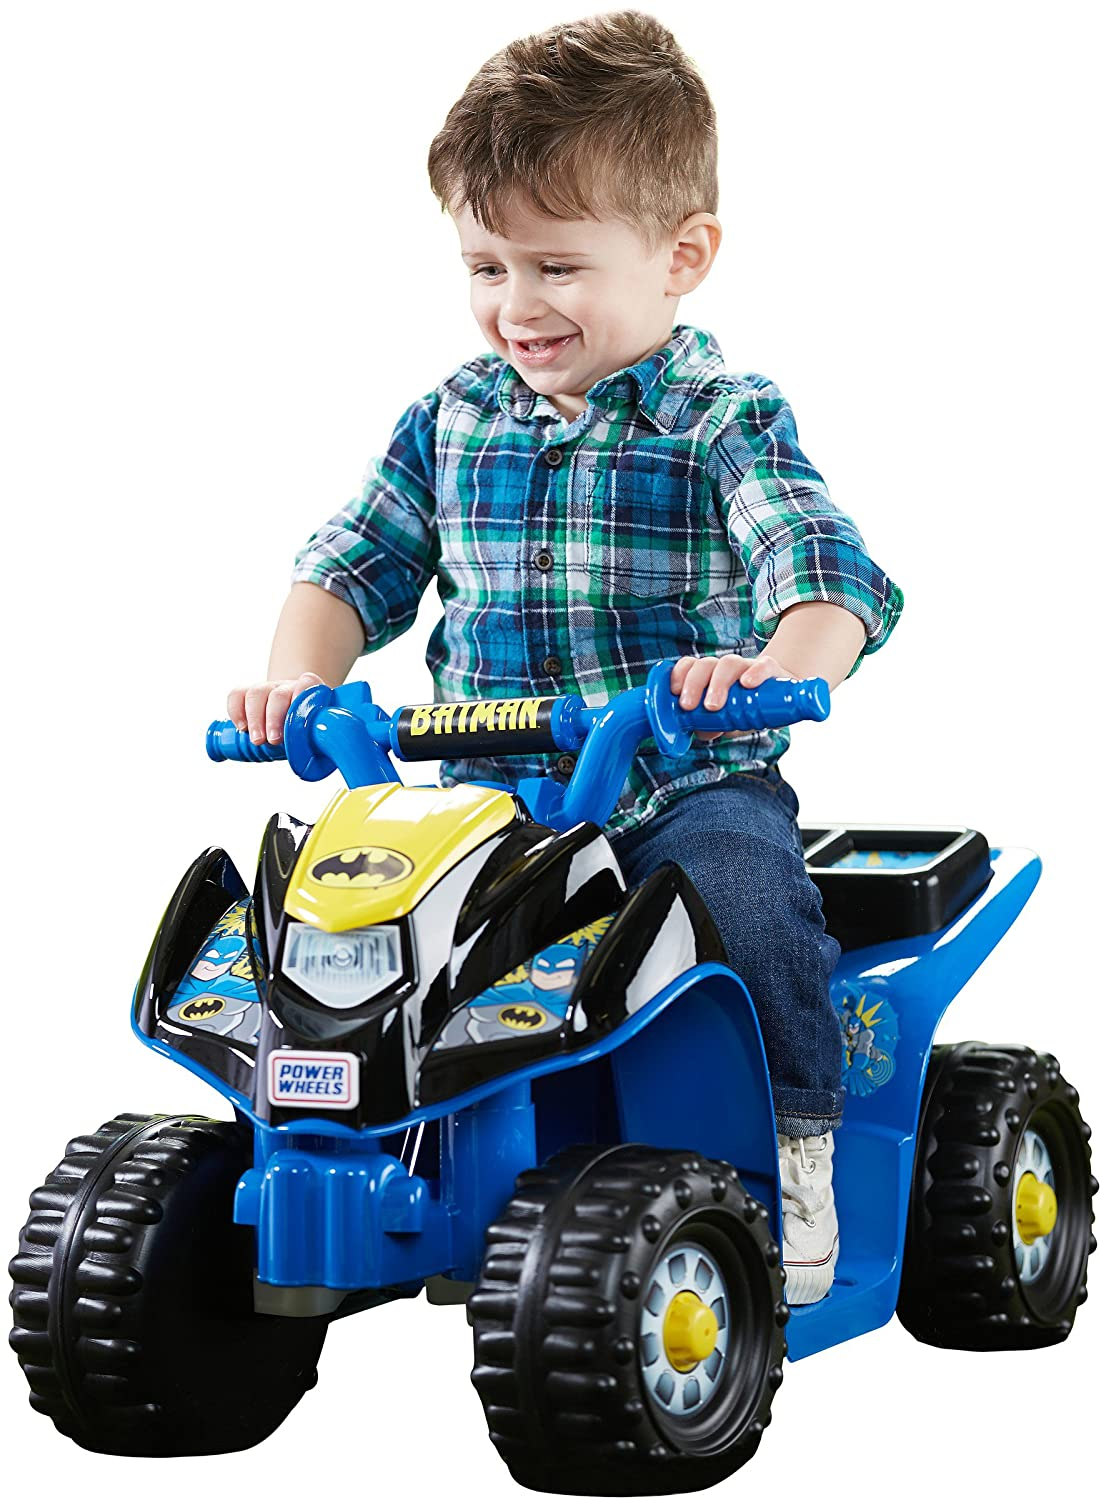 The Best Power Wheels Brand and Model Reviews 4